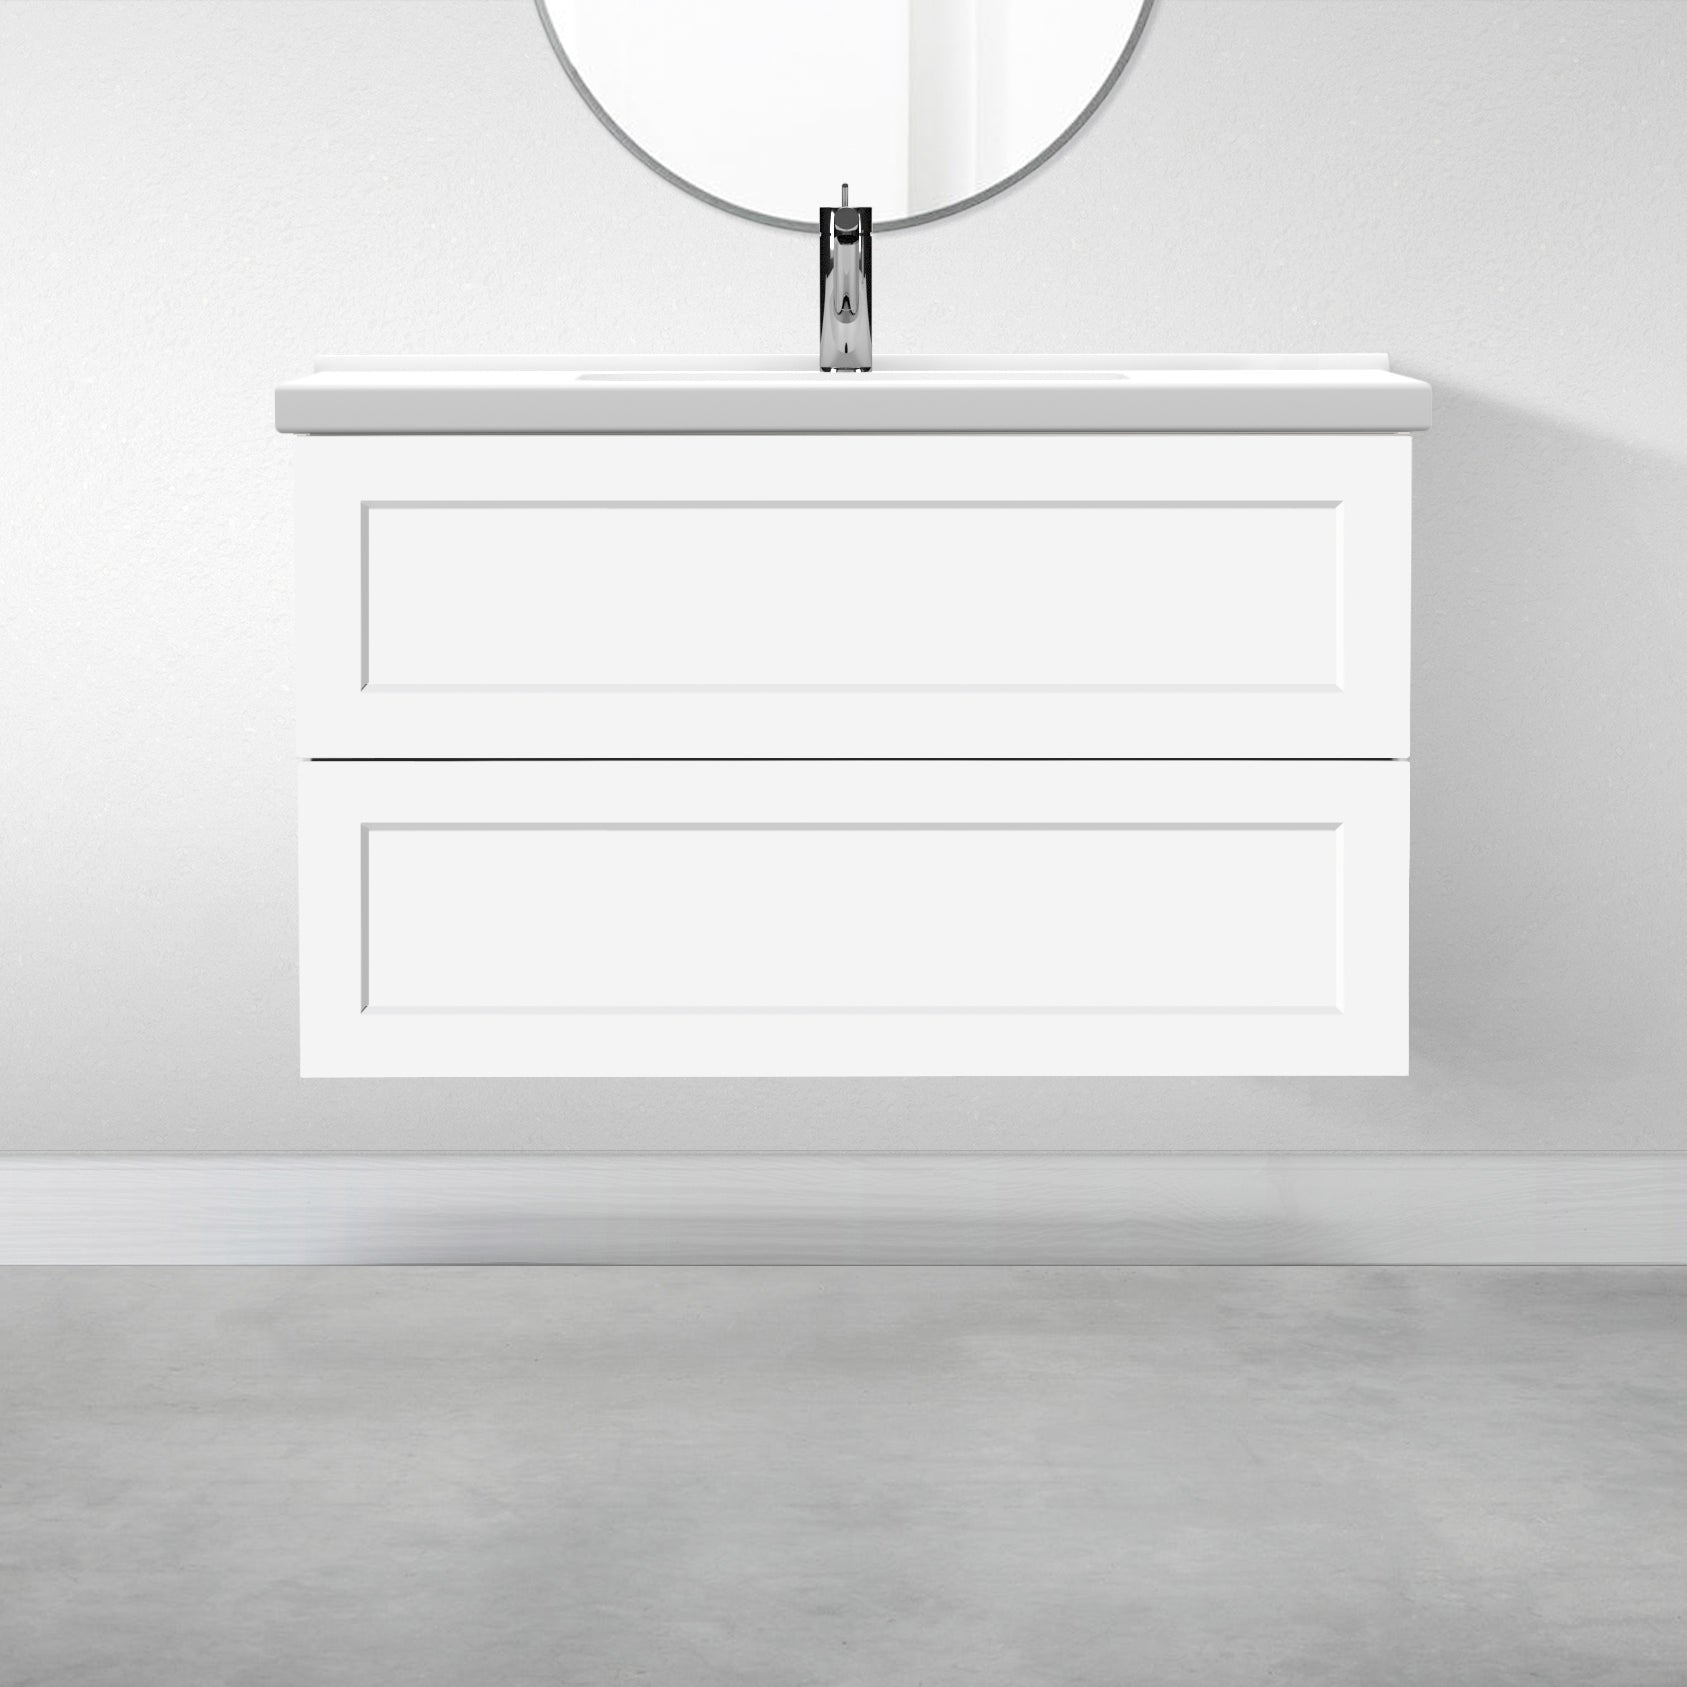 "2 Drawers - 39 3/8"" for Godmorgon Supermatte Shaker / White"